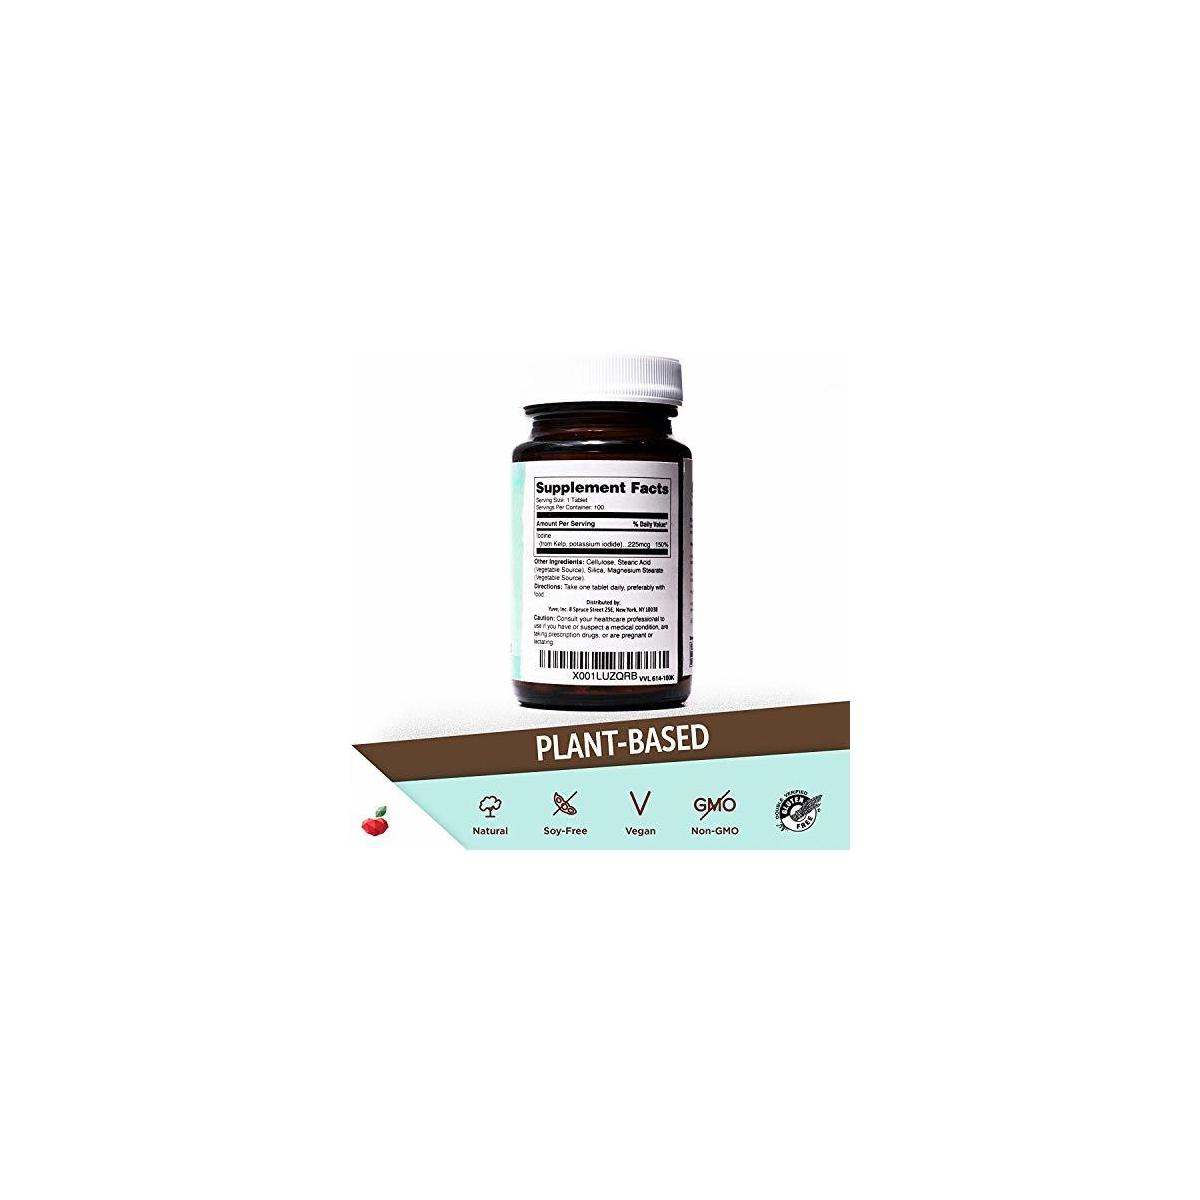 Yuve Natural Organic Sea Kelp Supplement - Thyroid Support with Iodine 225 mcg - Vegan, Plant Based, Non-GMO, Gluten-Free, Soy-Free - Pure Dried Seaweed Sourced from North Atlantic Ocean - 100 Tablets